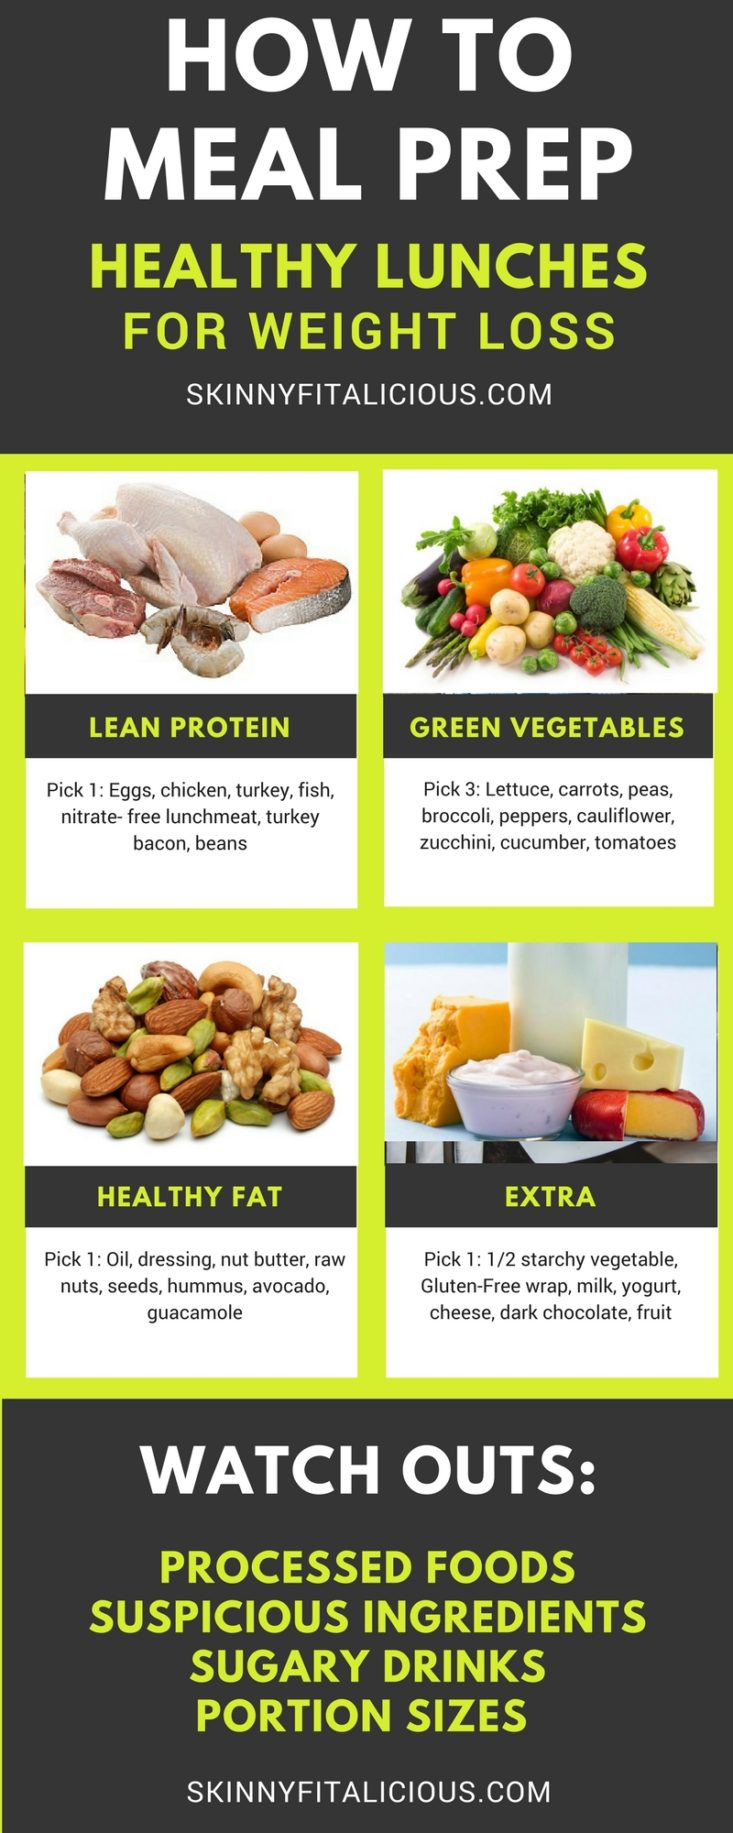 How To Meal Prep Healthy Lunches For Weight Loss